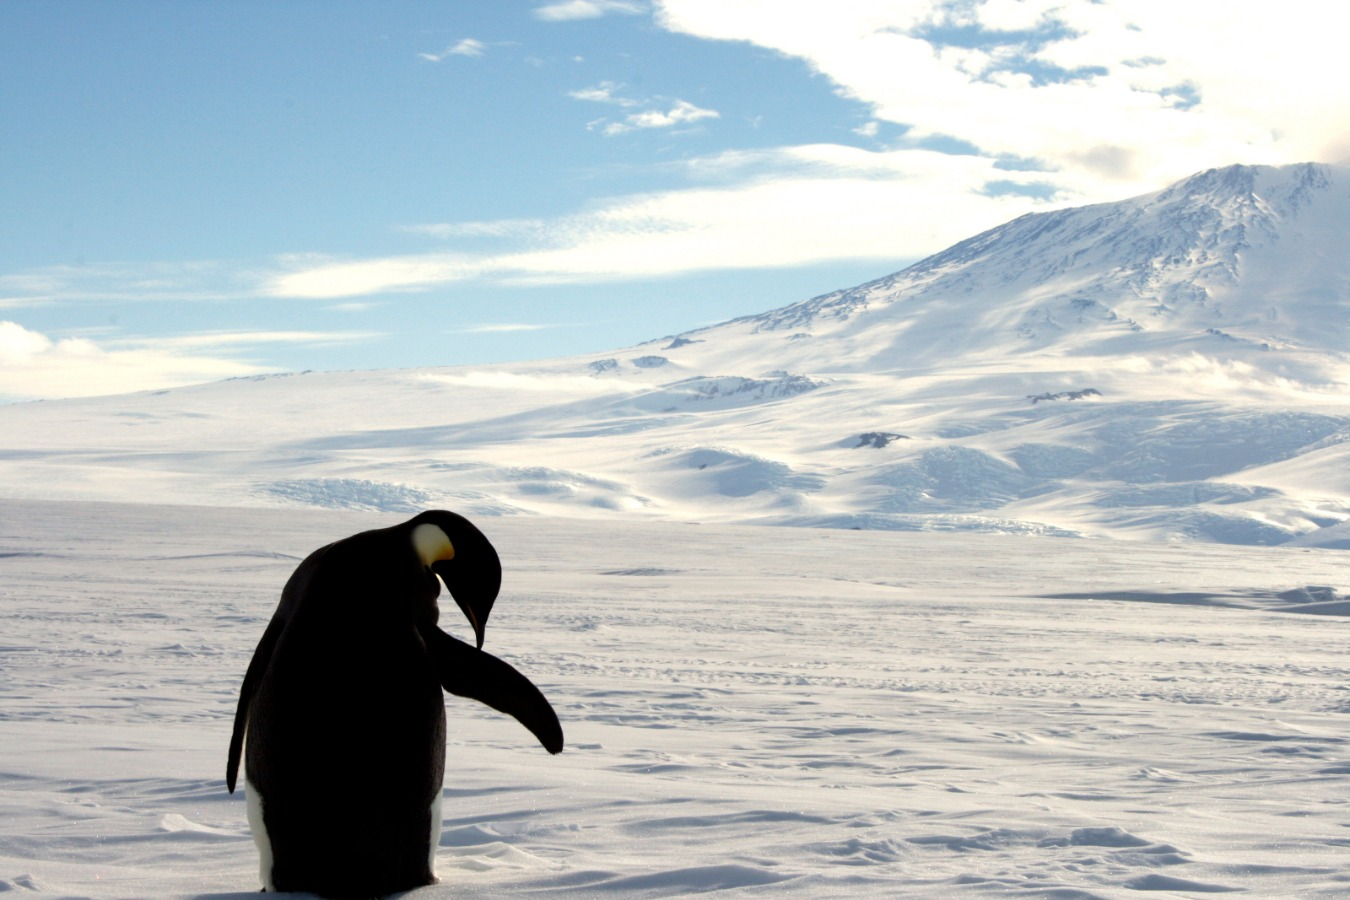 Antarctica Is An Environmental Disaster Just Waiting To Happen - The National Interest Online